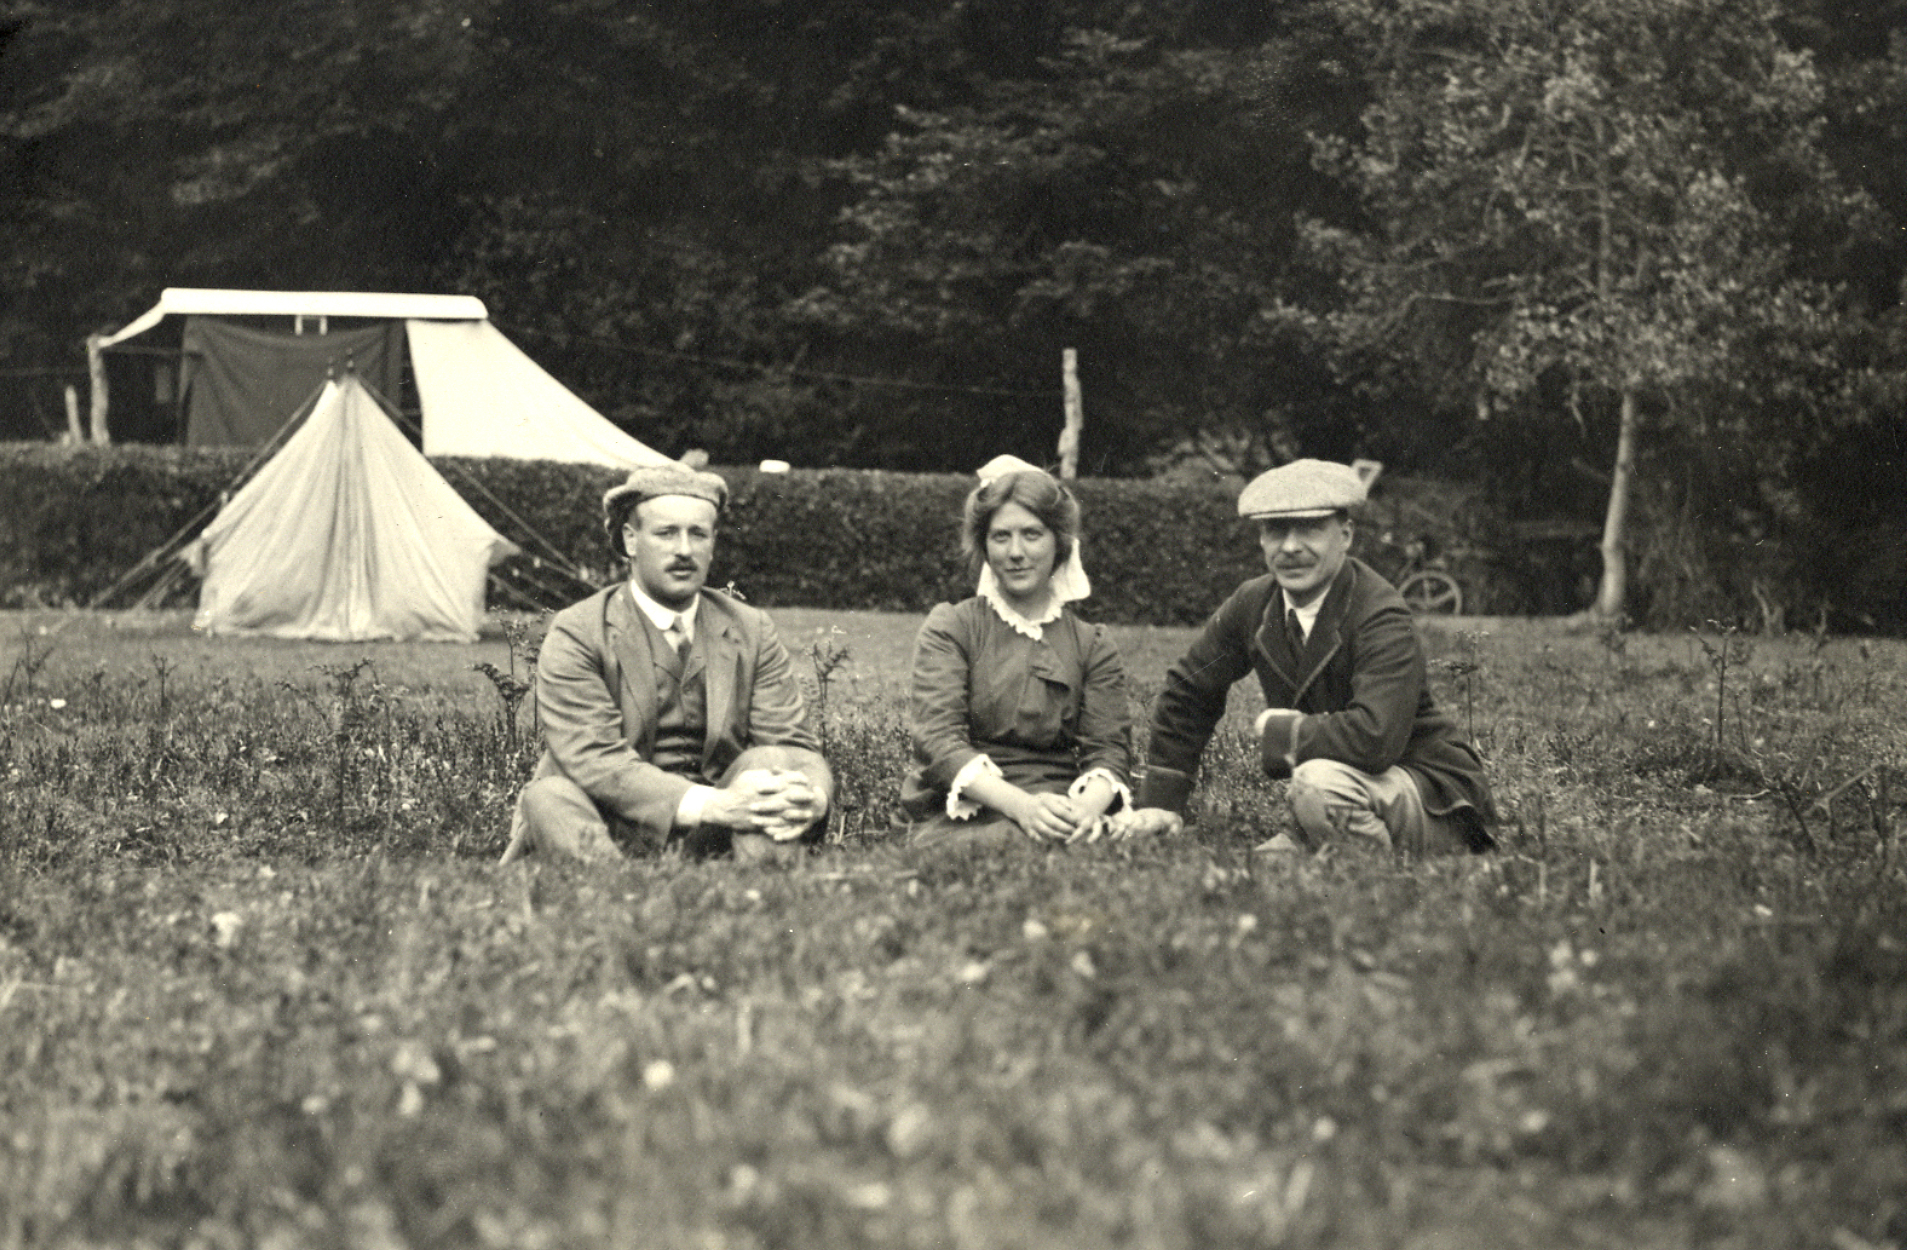 One lady and two men seated in a field in front of a caravan